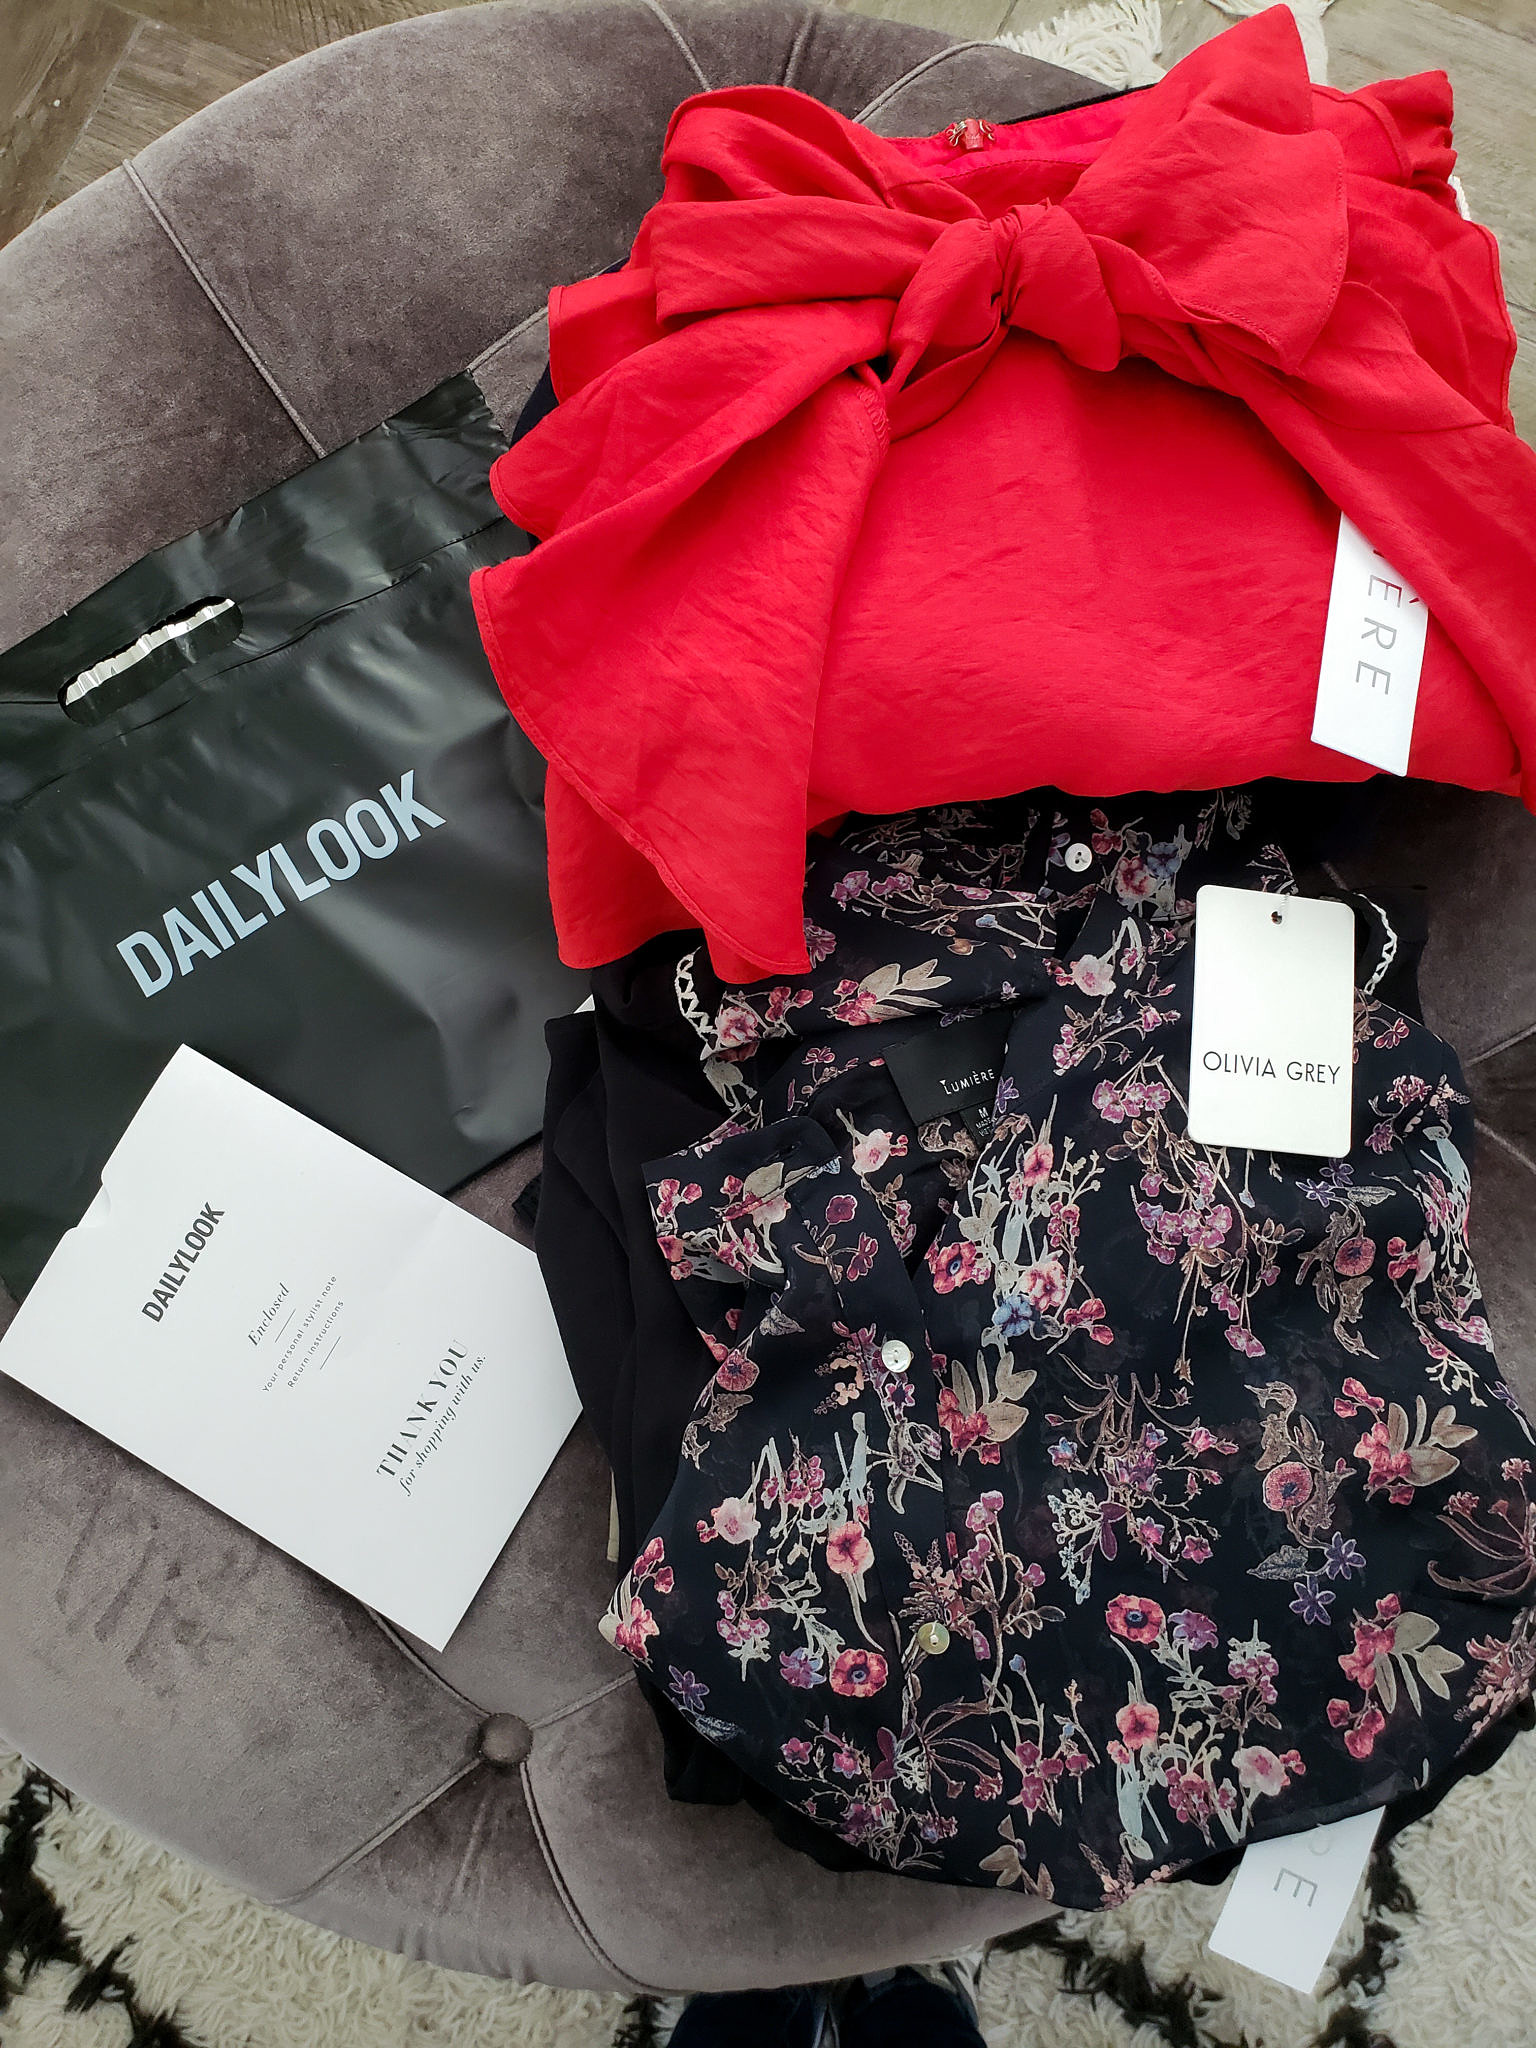 My First Clothing Subscription Box with DailyLook